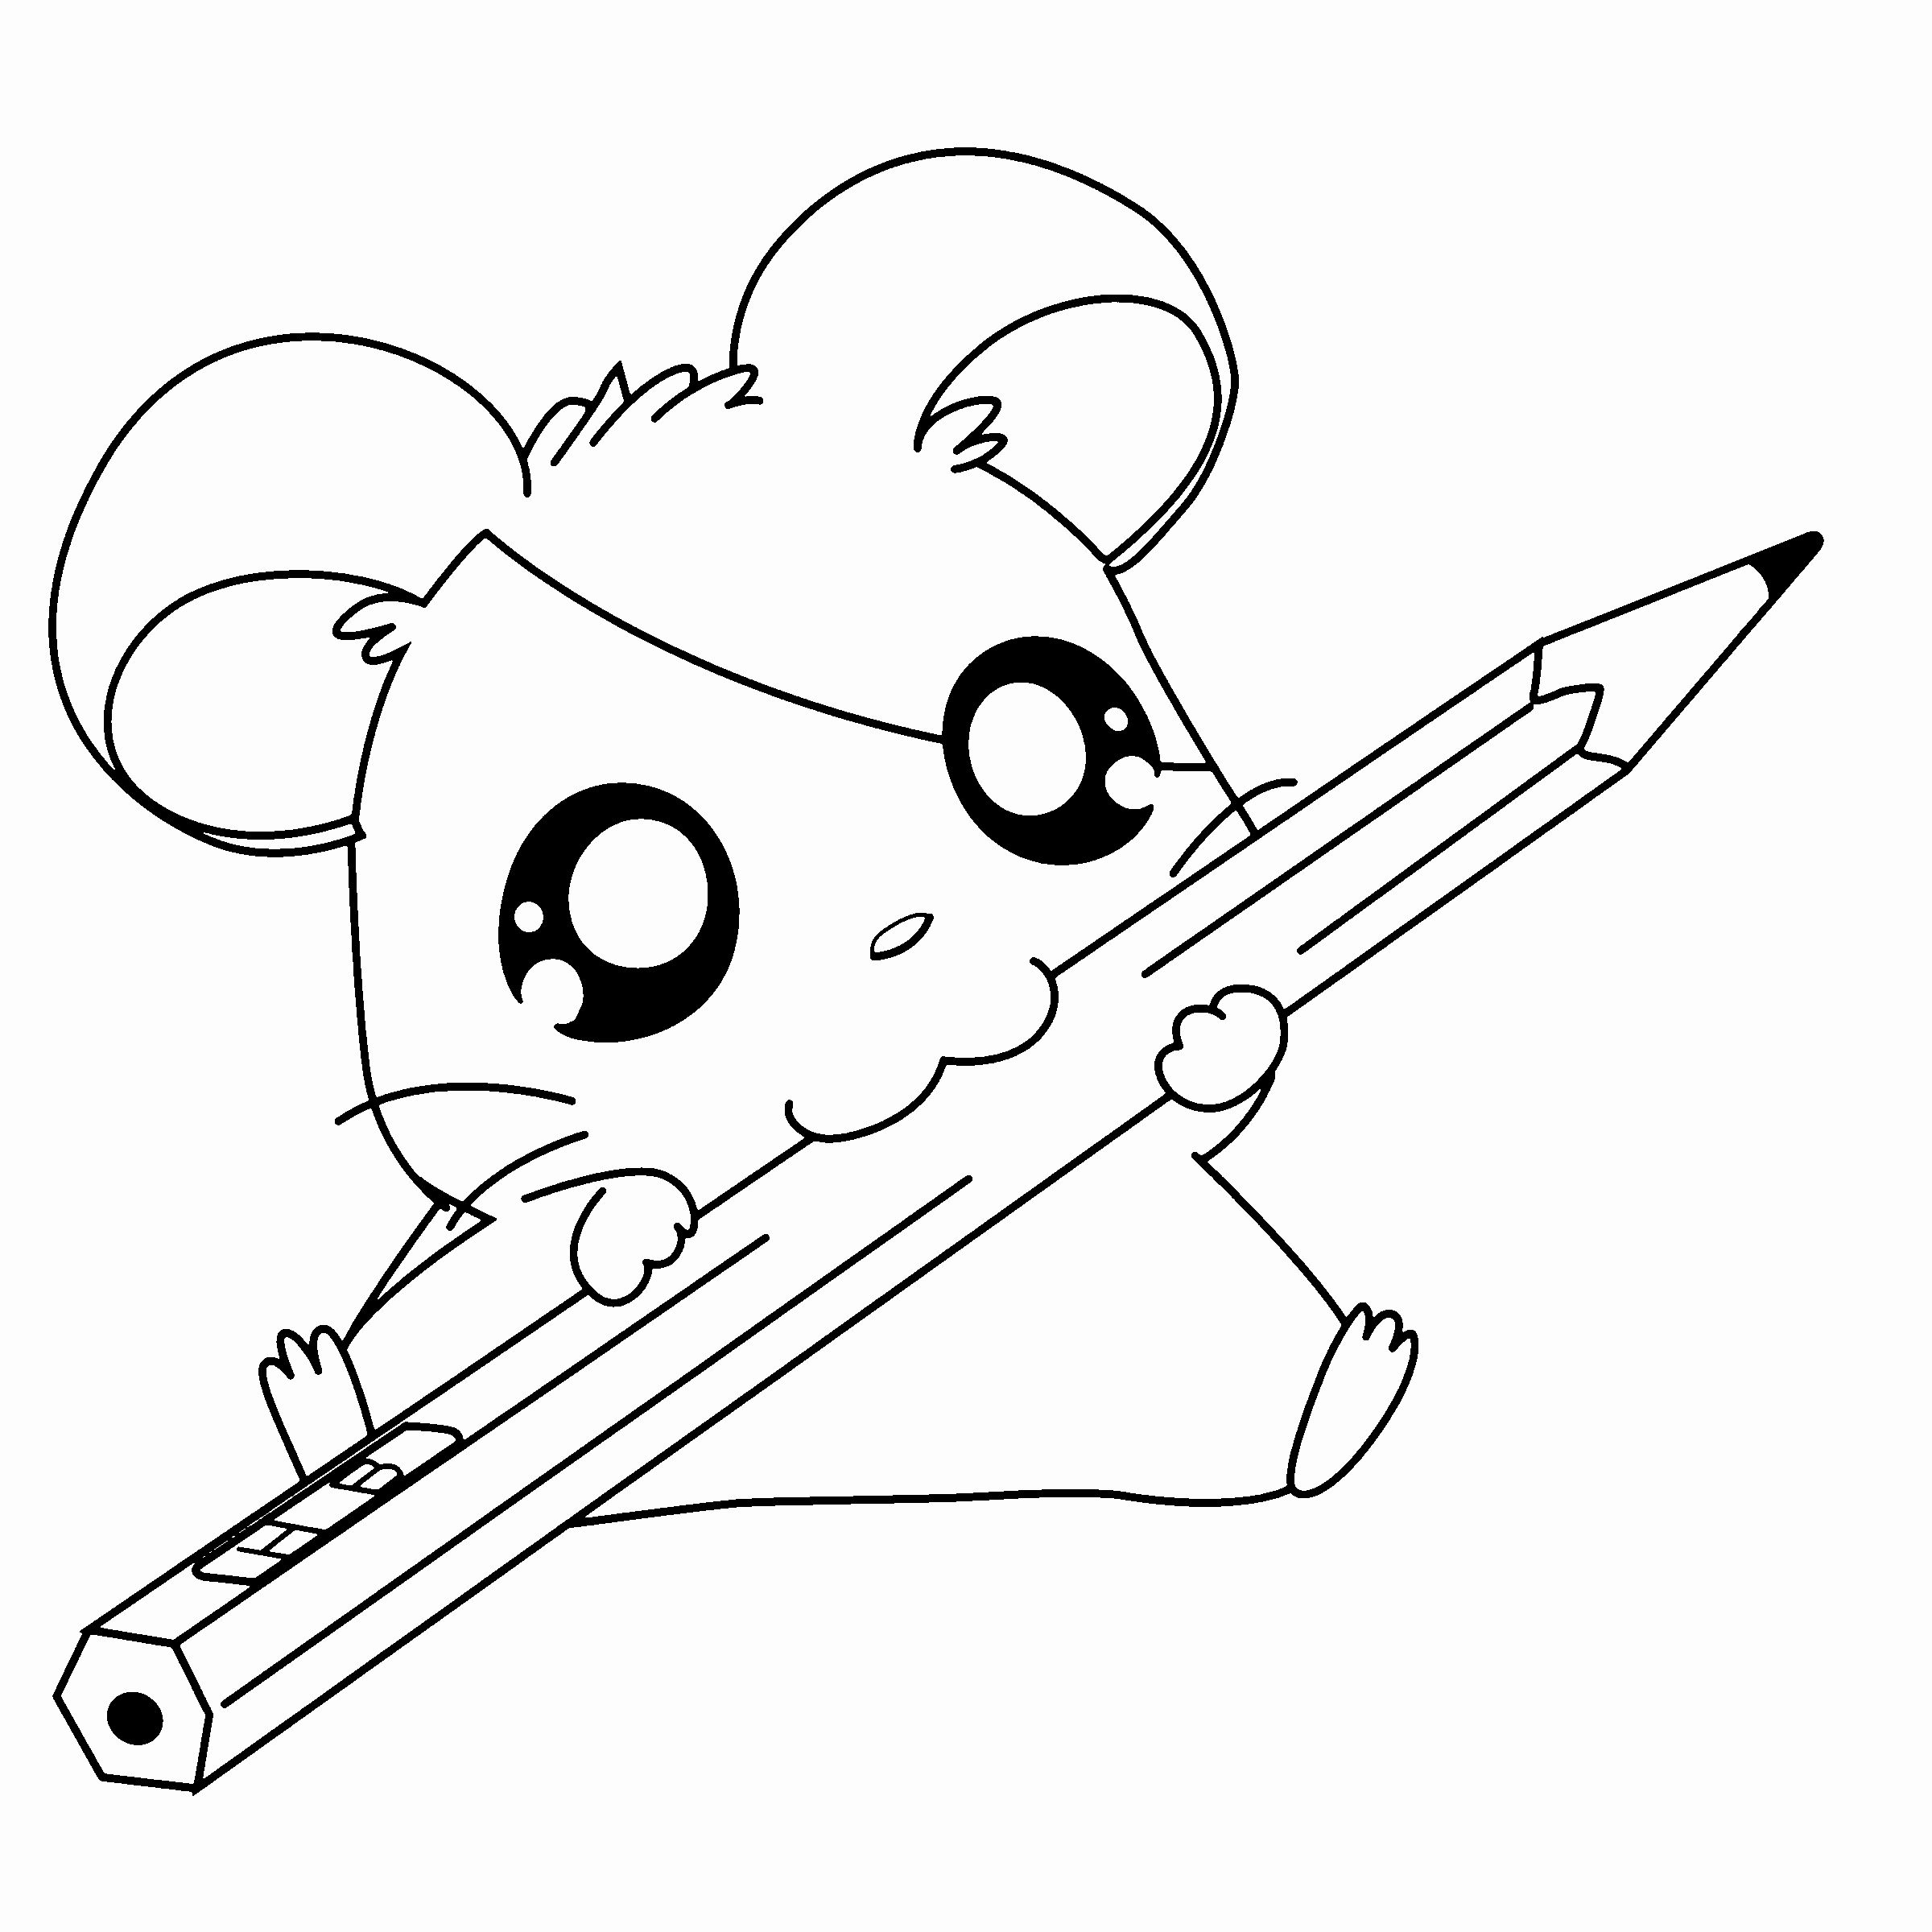 Animal Coloring Videos Luxury Free Coloring Pages Big Eyed Animals 90 Cute Drawings Puppy Coloring Pages Animal Coloring Books